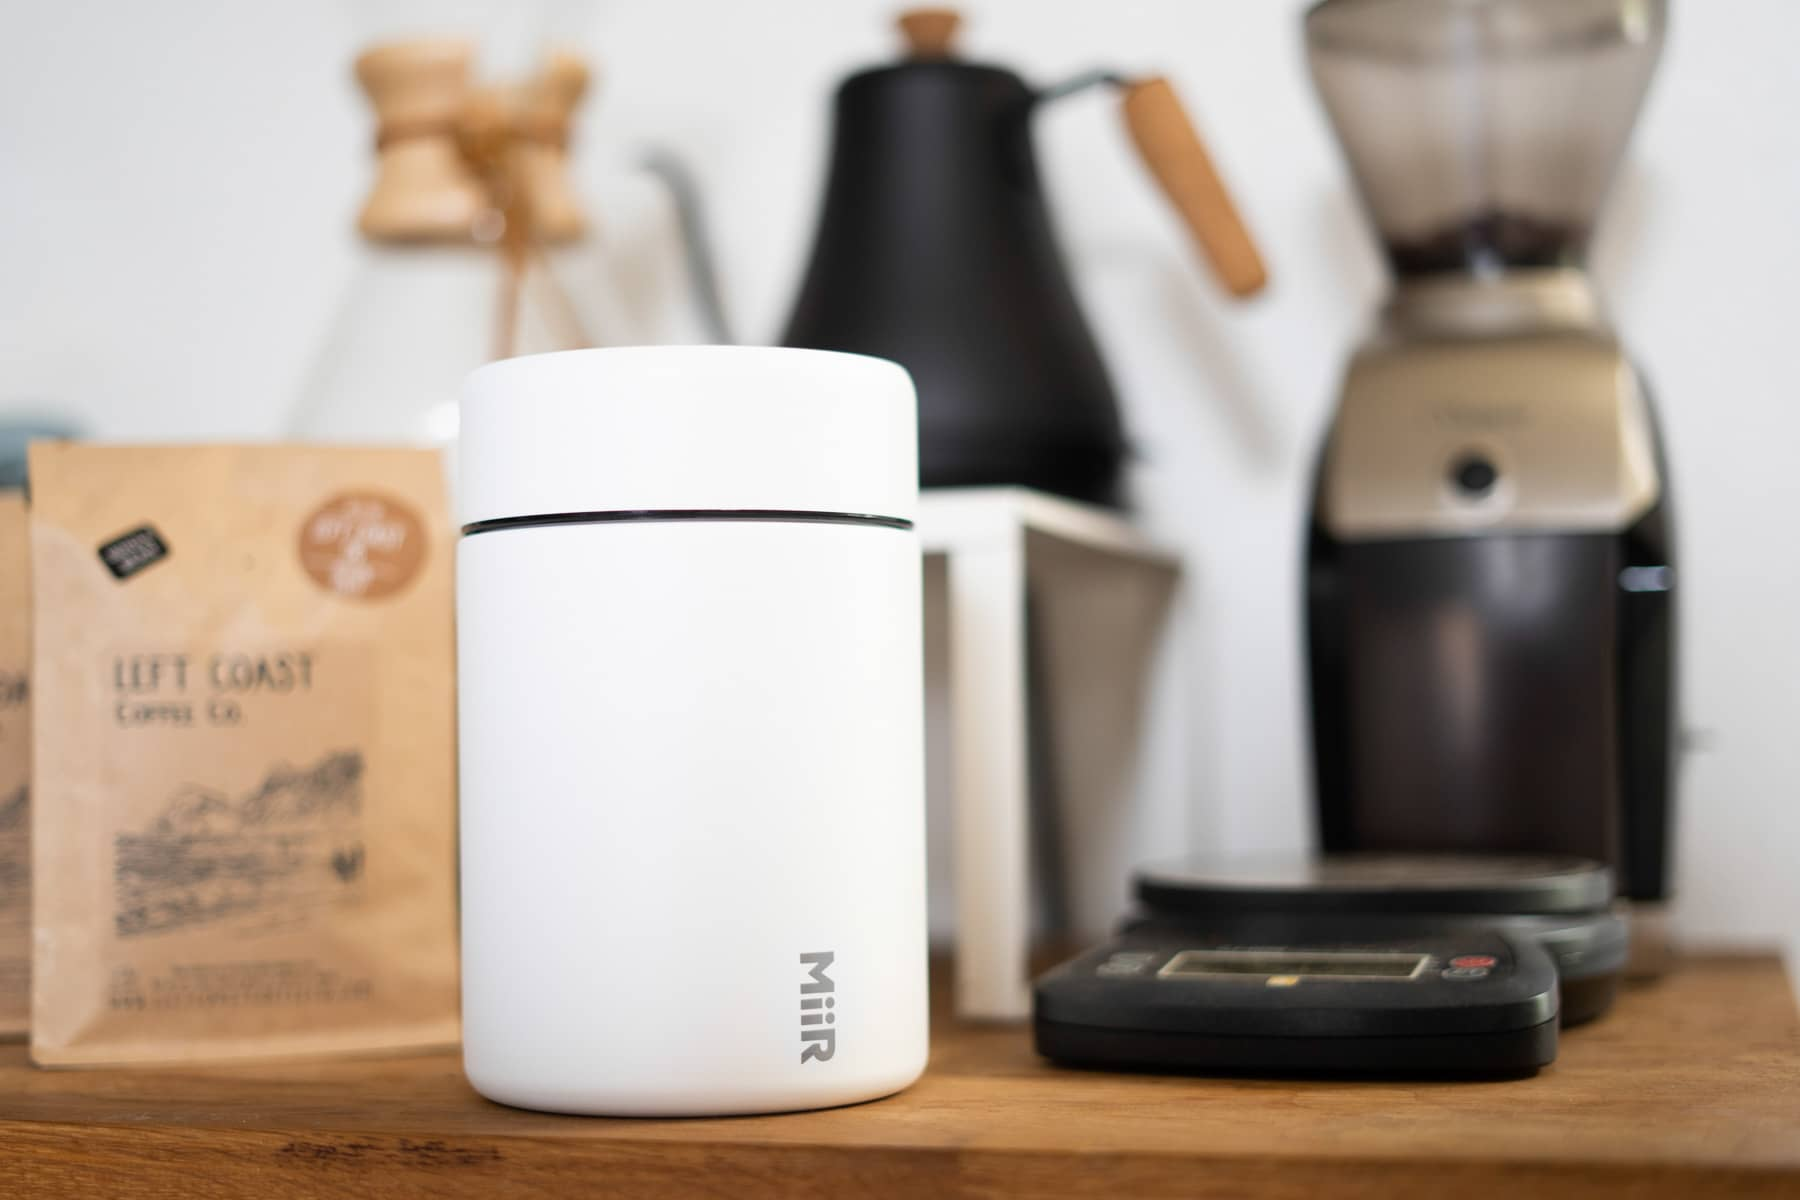 Closed white coffee canister in front of a coffee maker and a bag of coffee